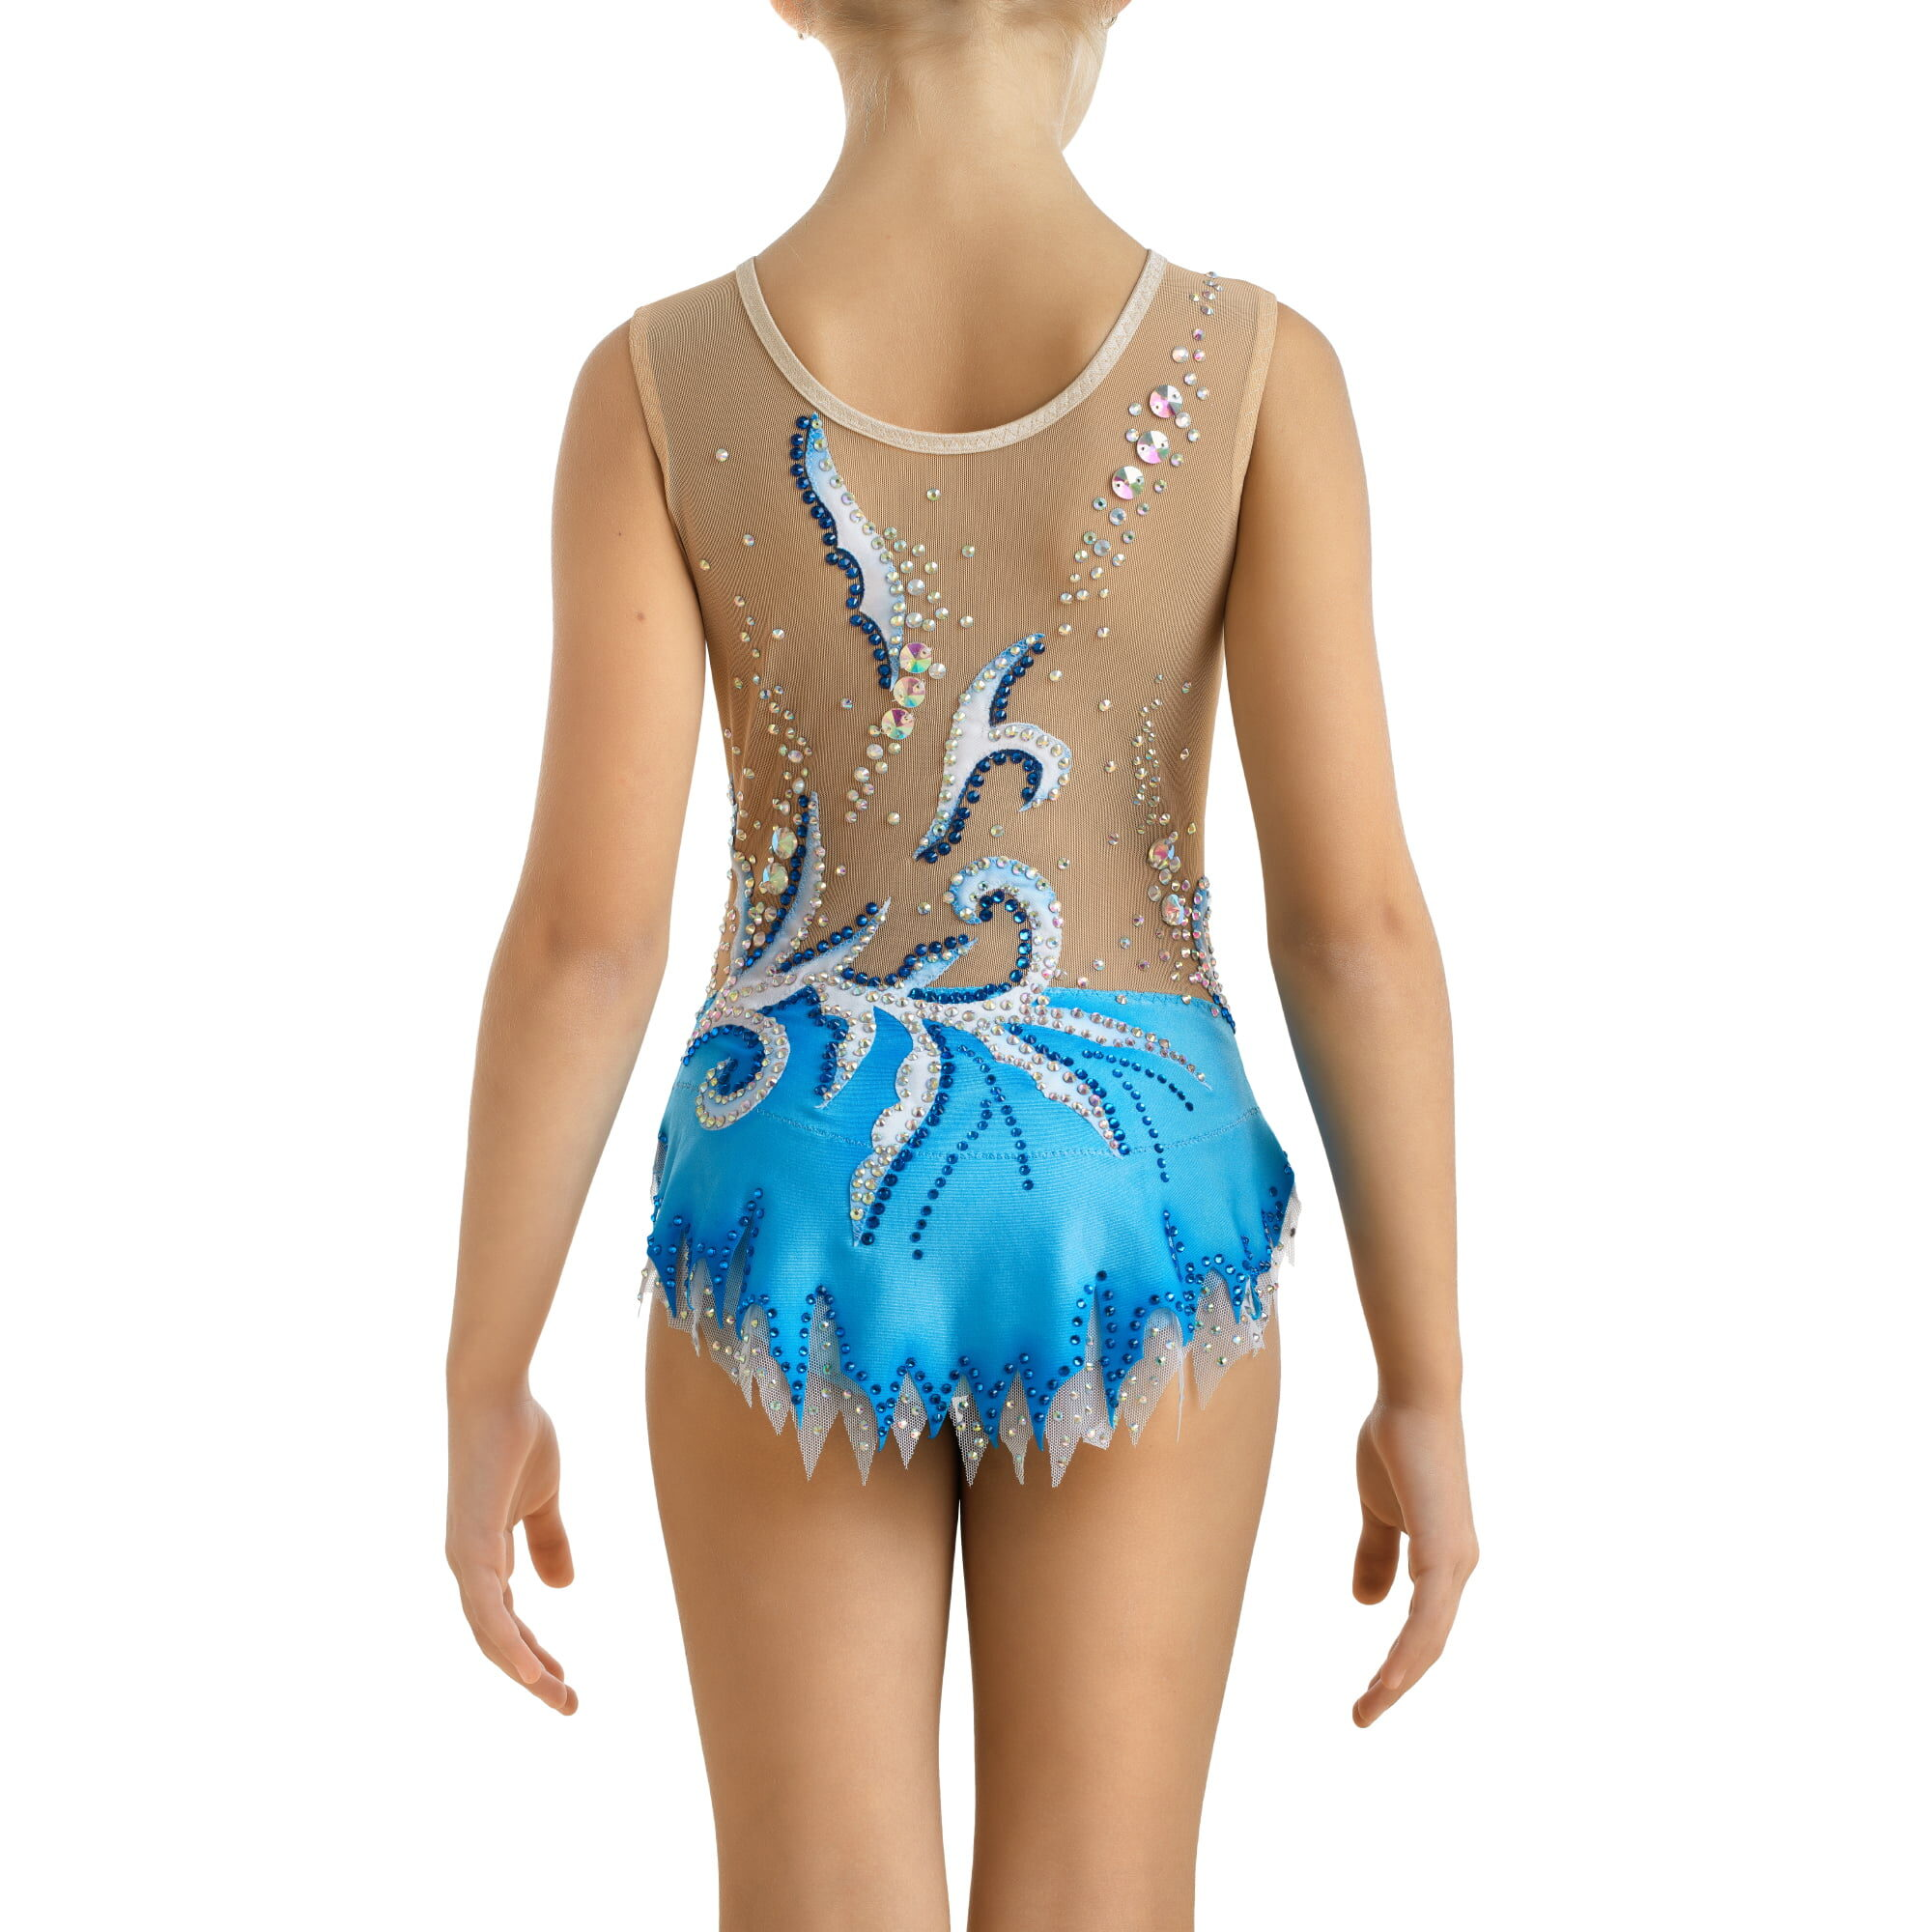 Blue, silver, mesh Baton Twirling Costume 250 for competitions